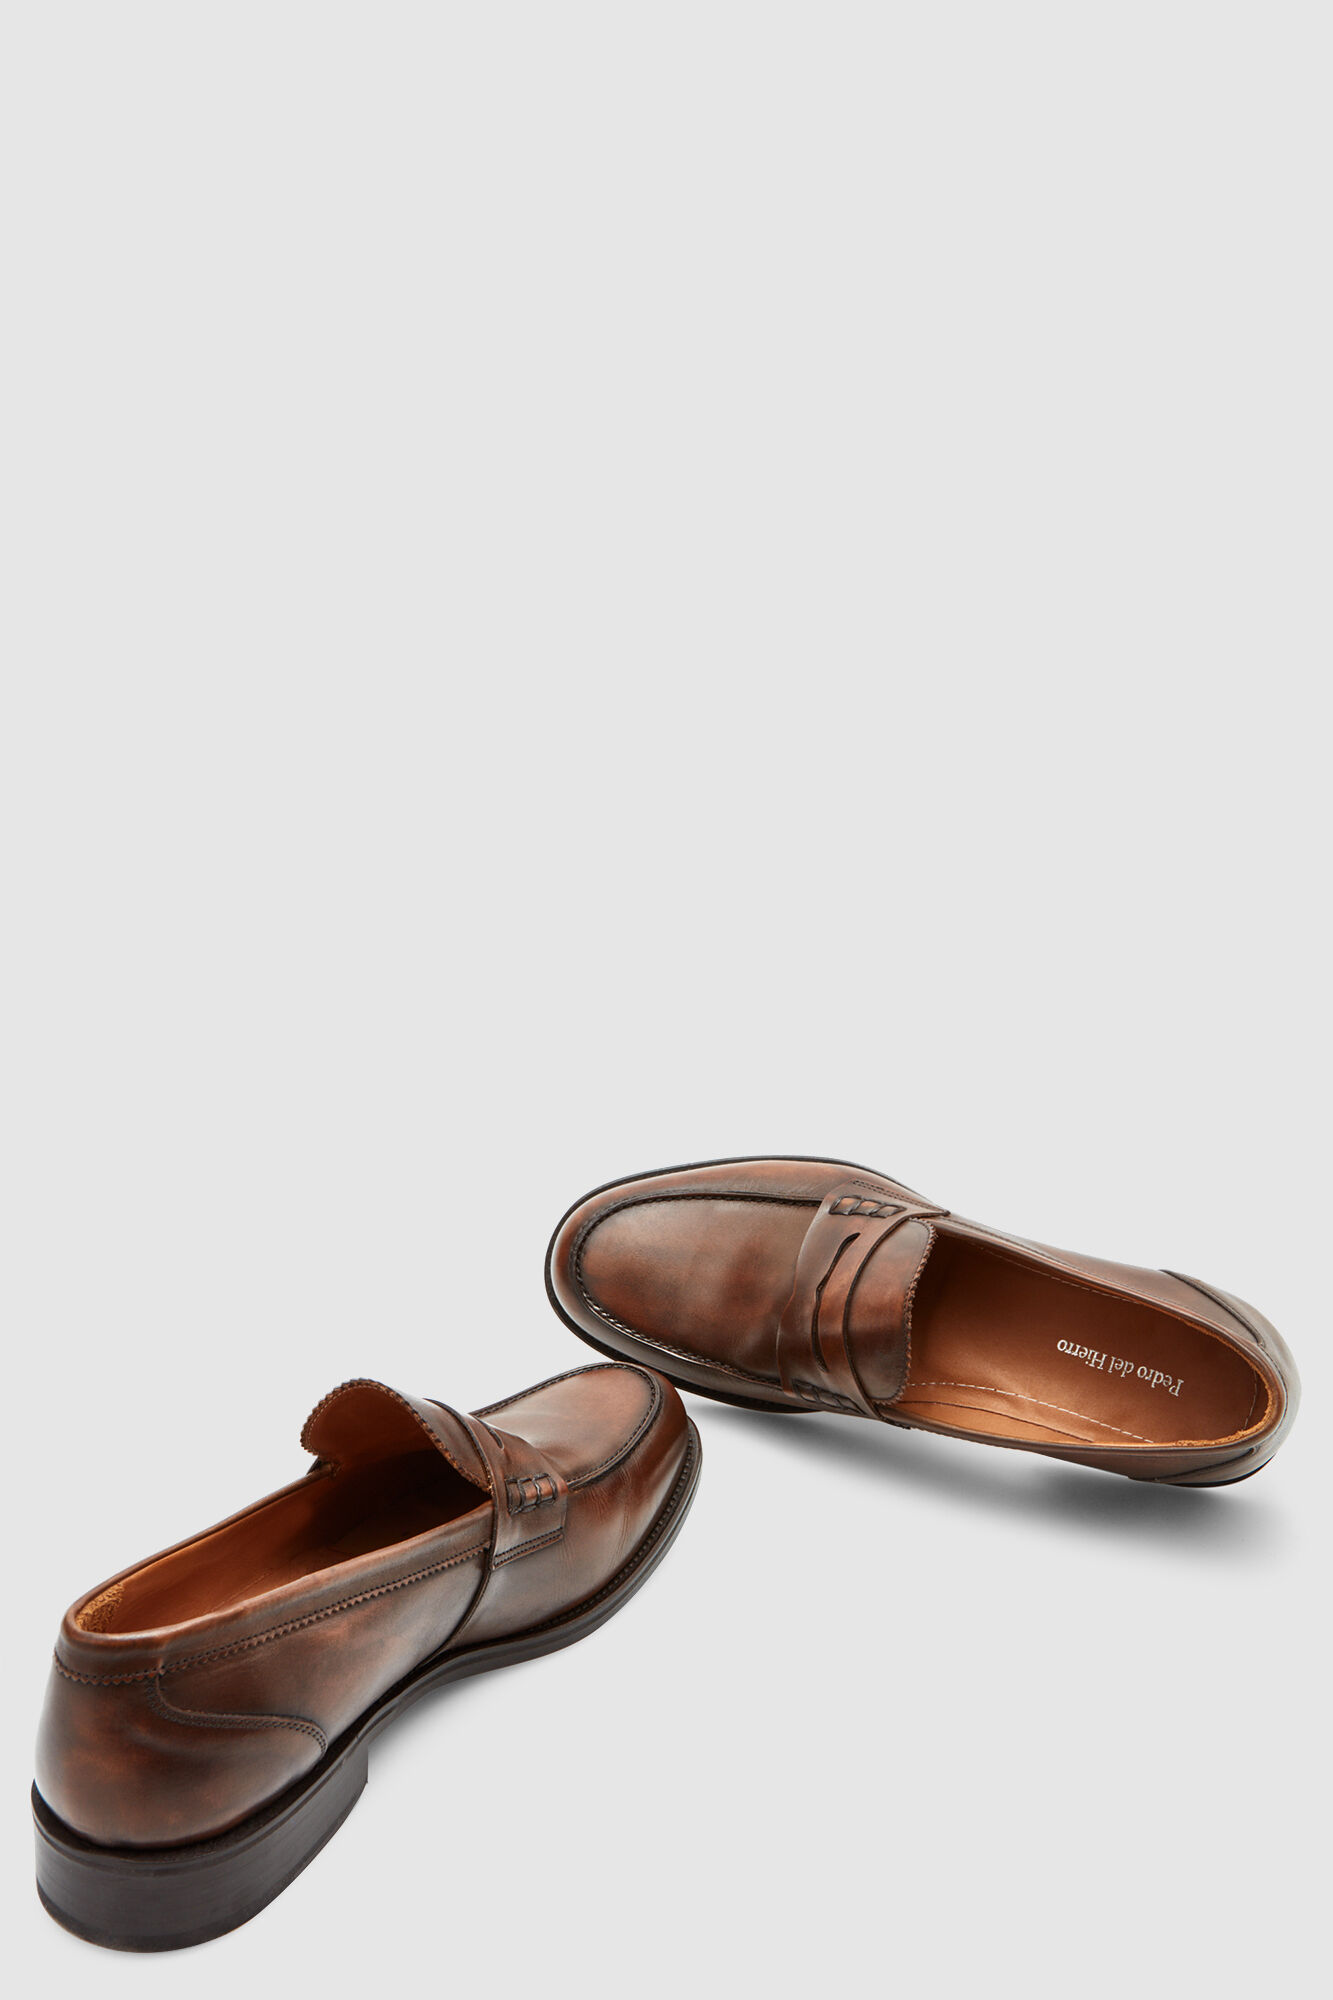 070b90ab4d9 Leather moccasin